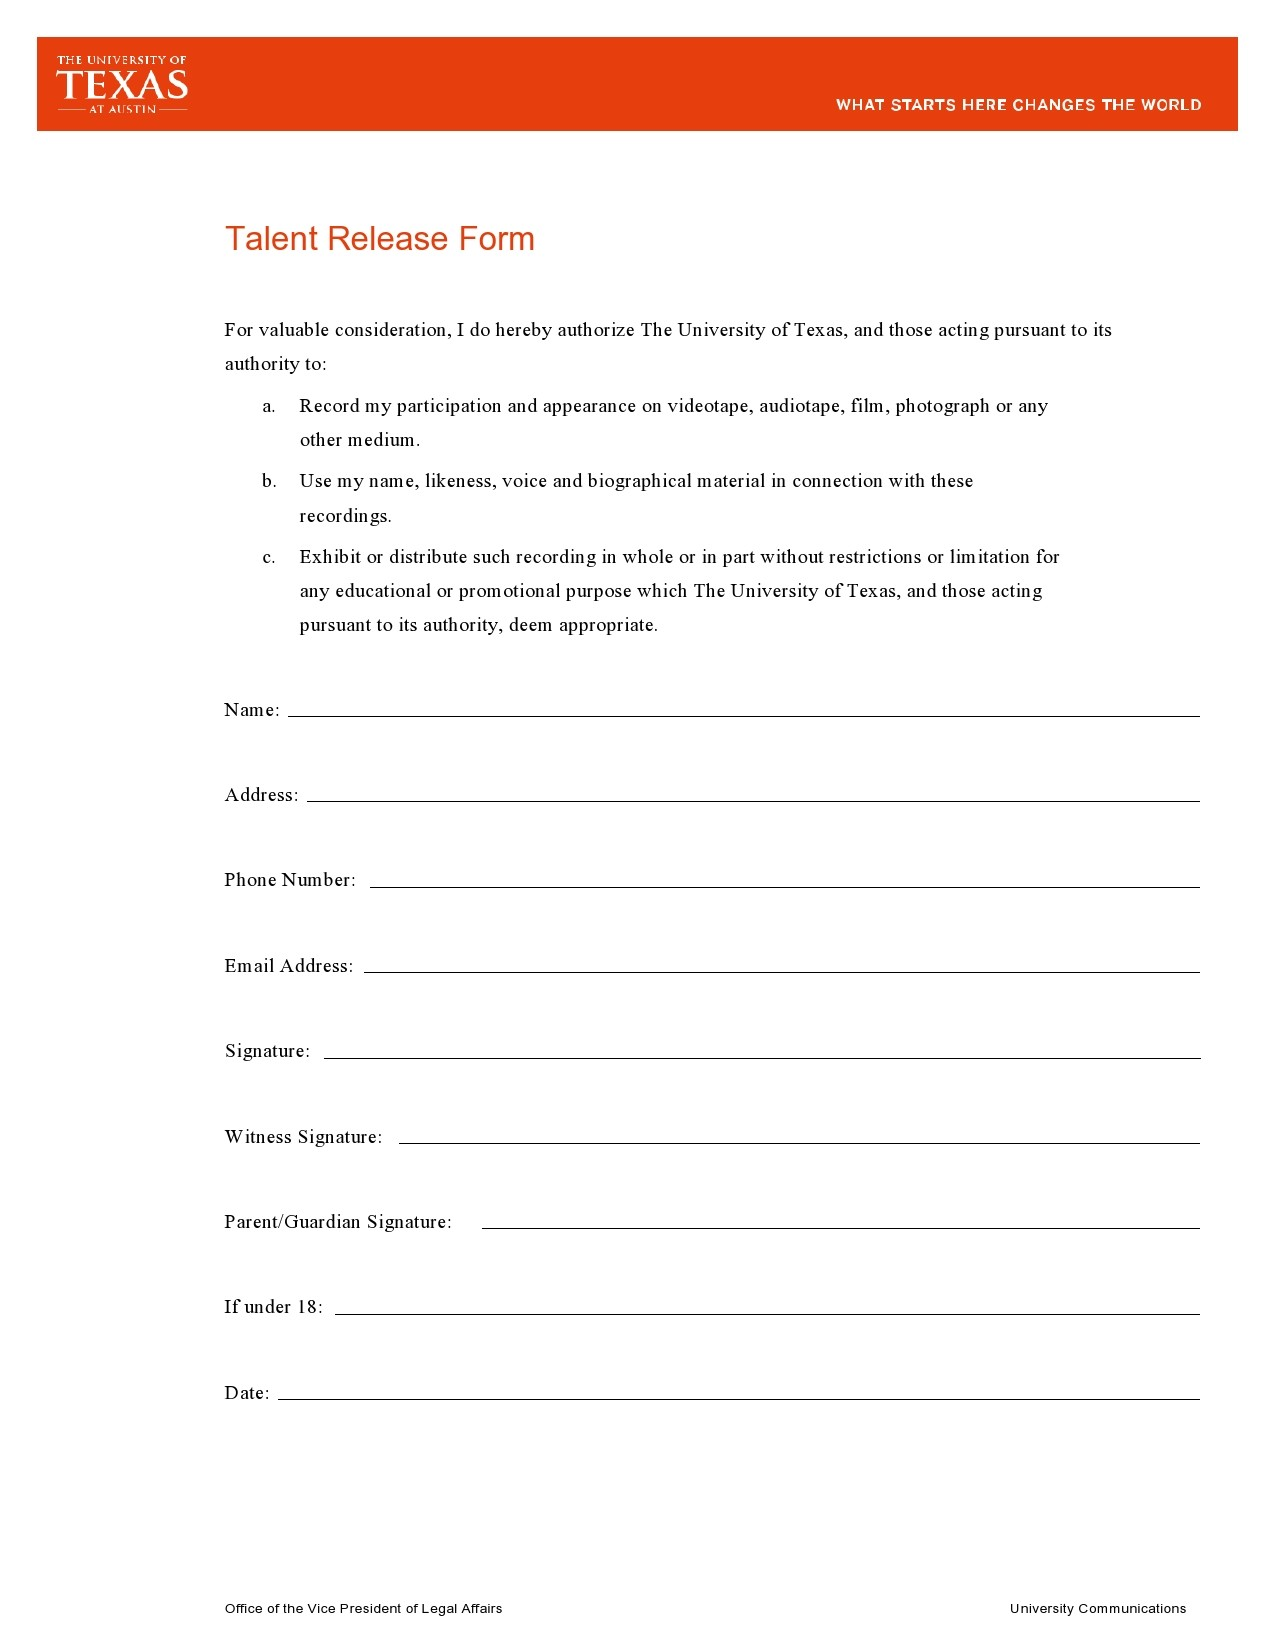 Free talent release form 22